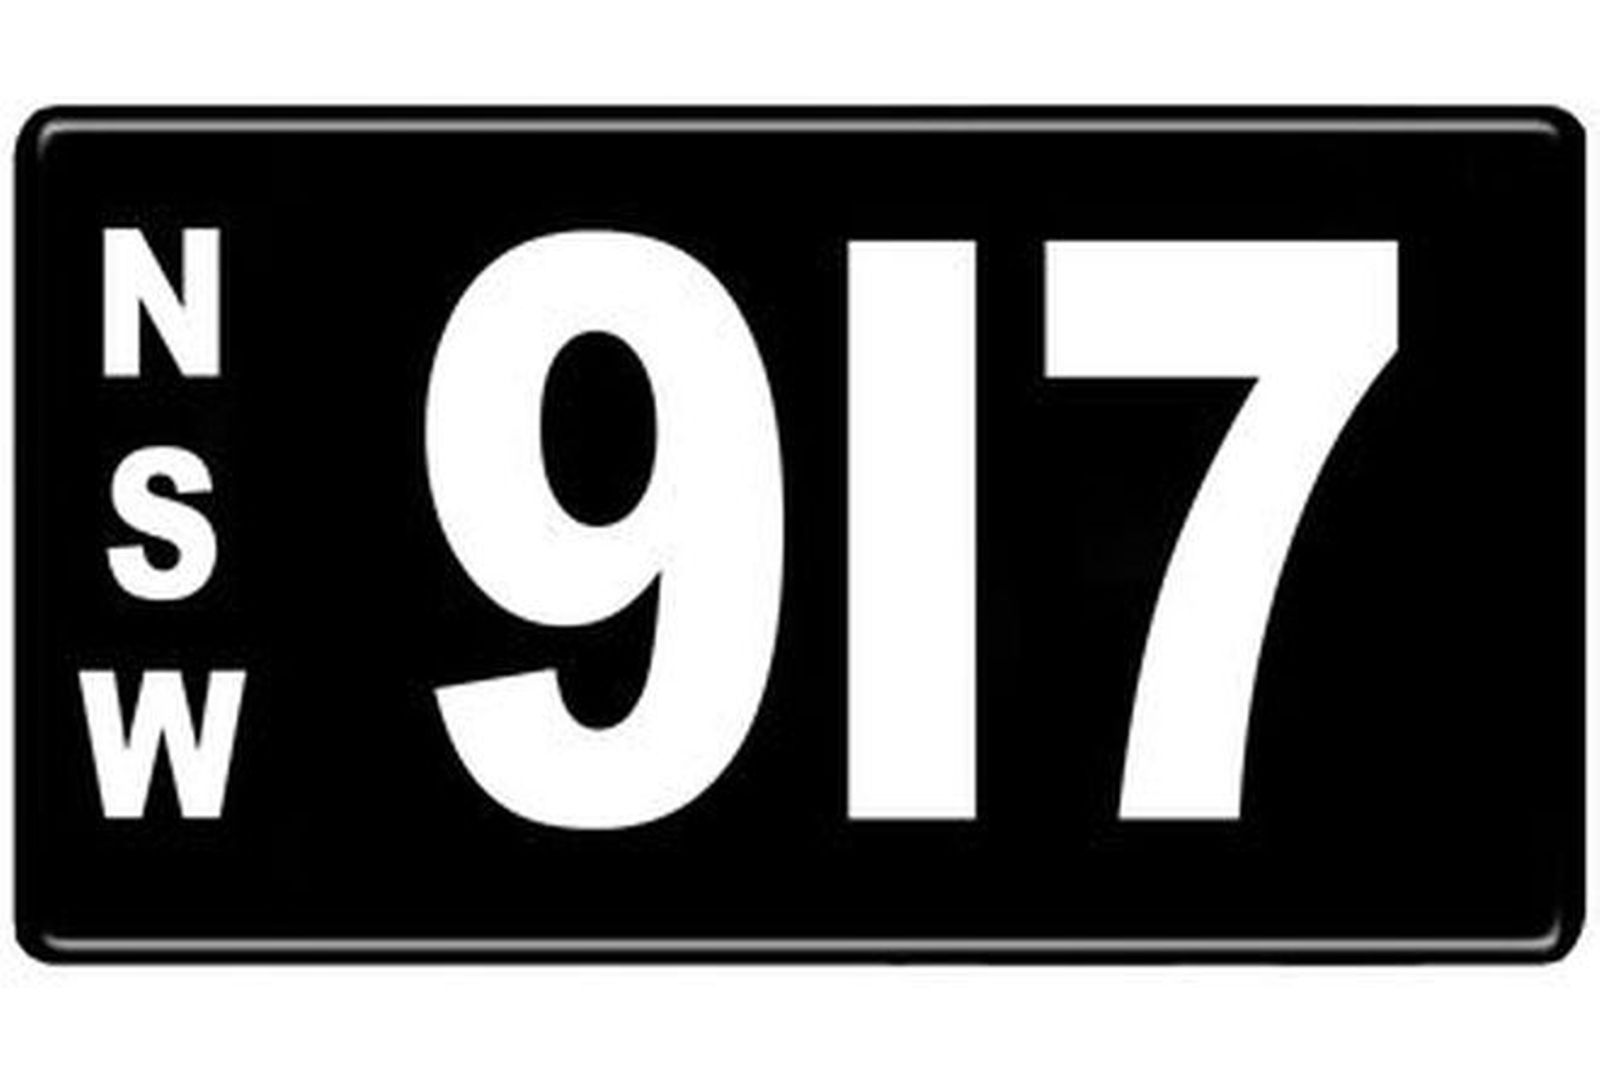 Number Plates - NSW Numerical Number Plates '917'